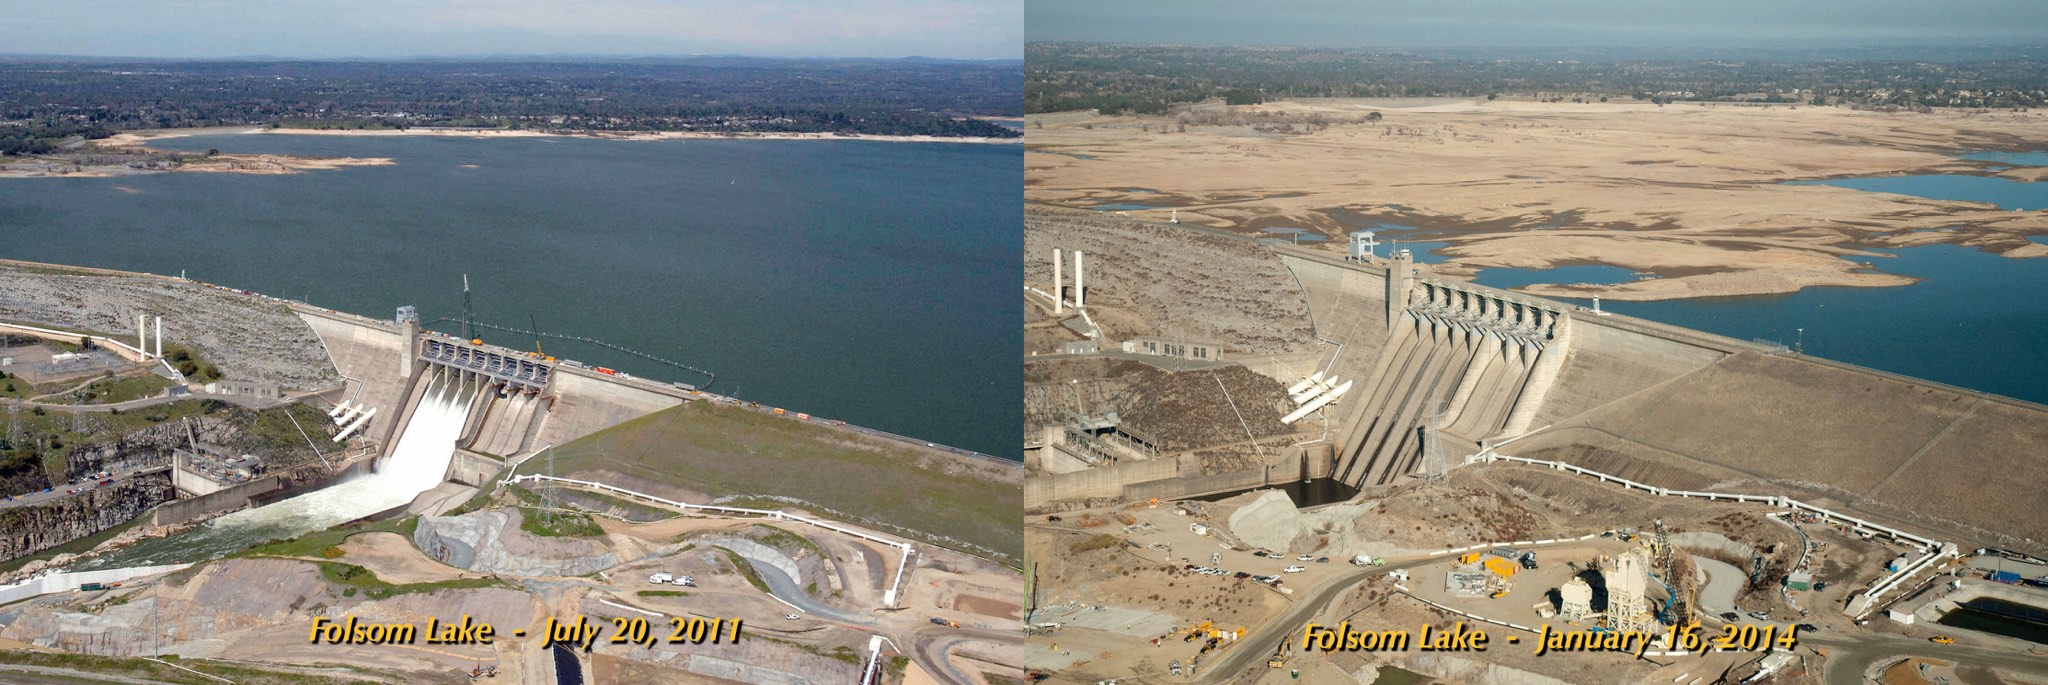 Folsom Lake during drought and non-drought conditions